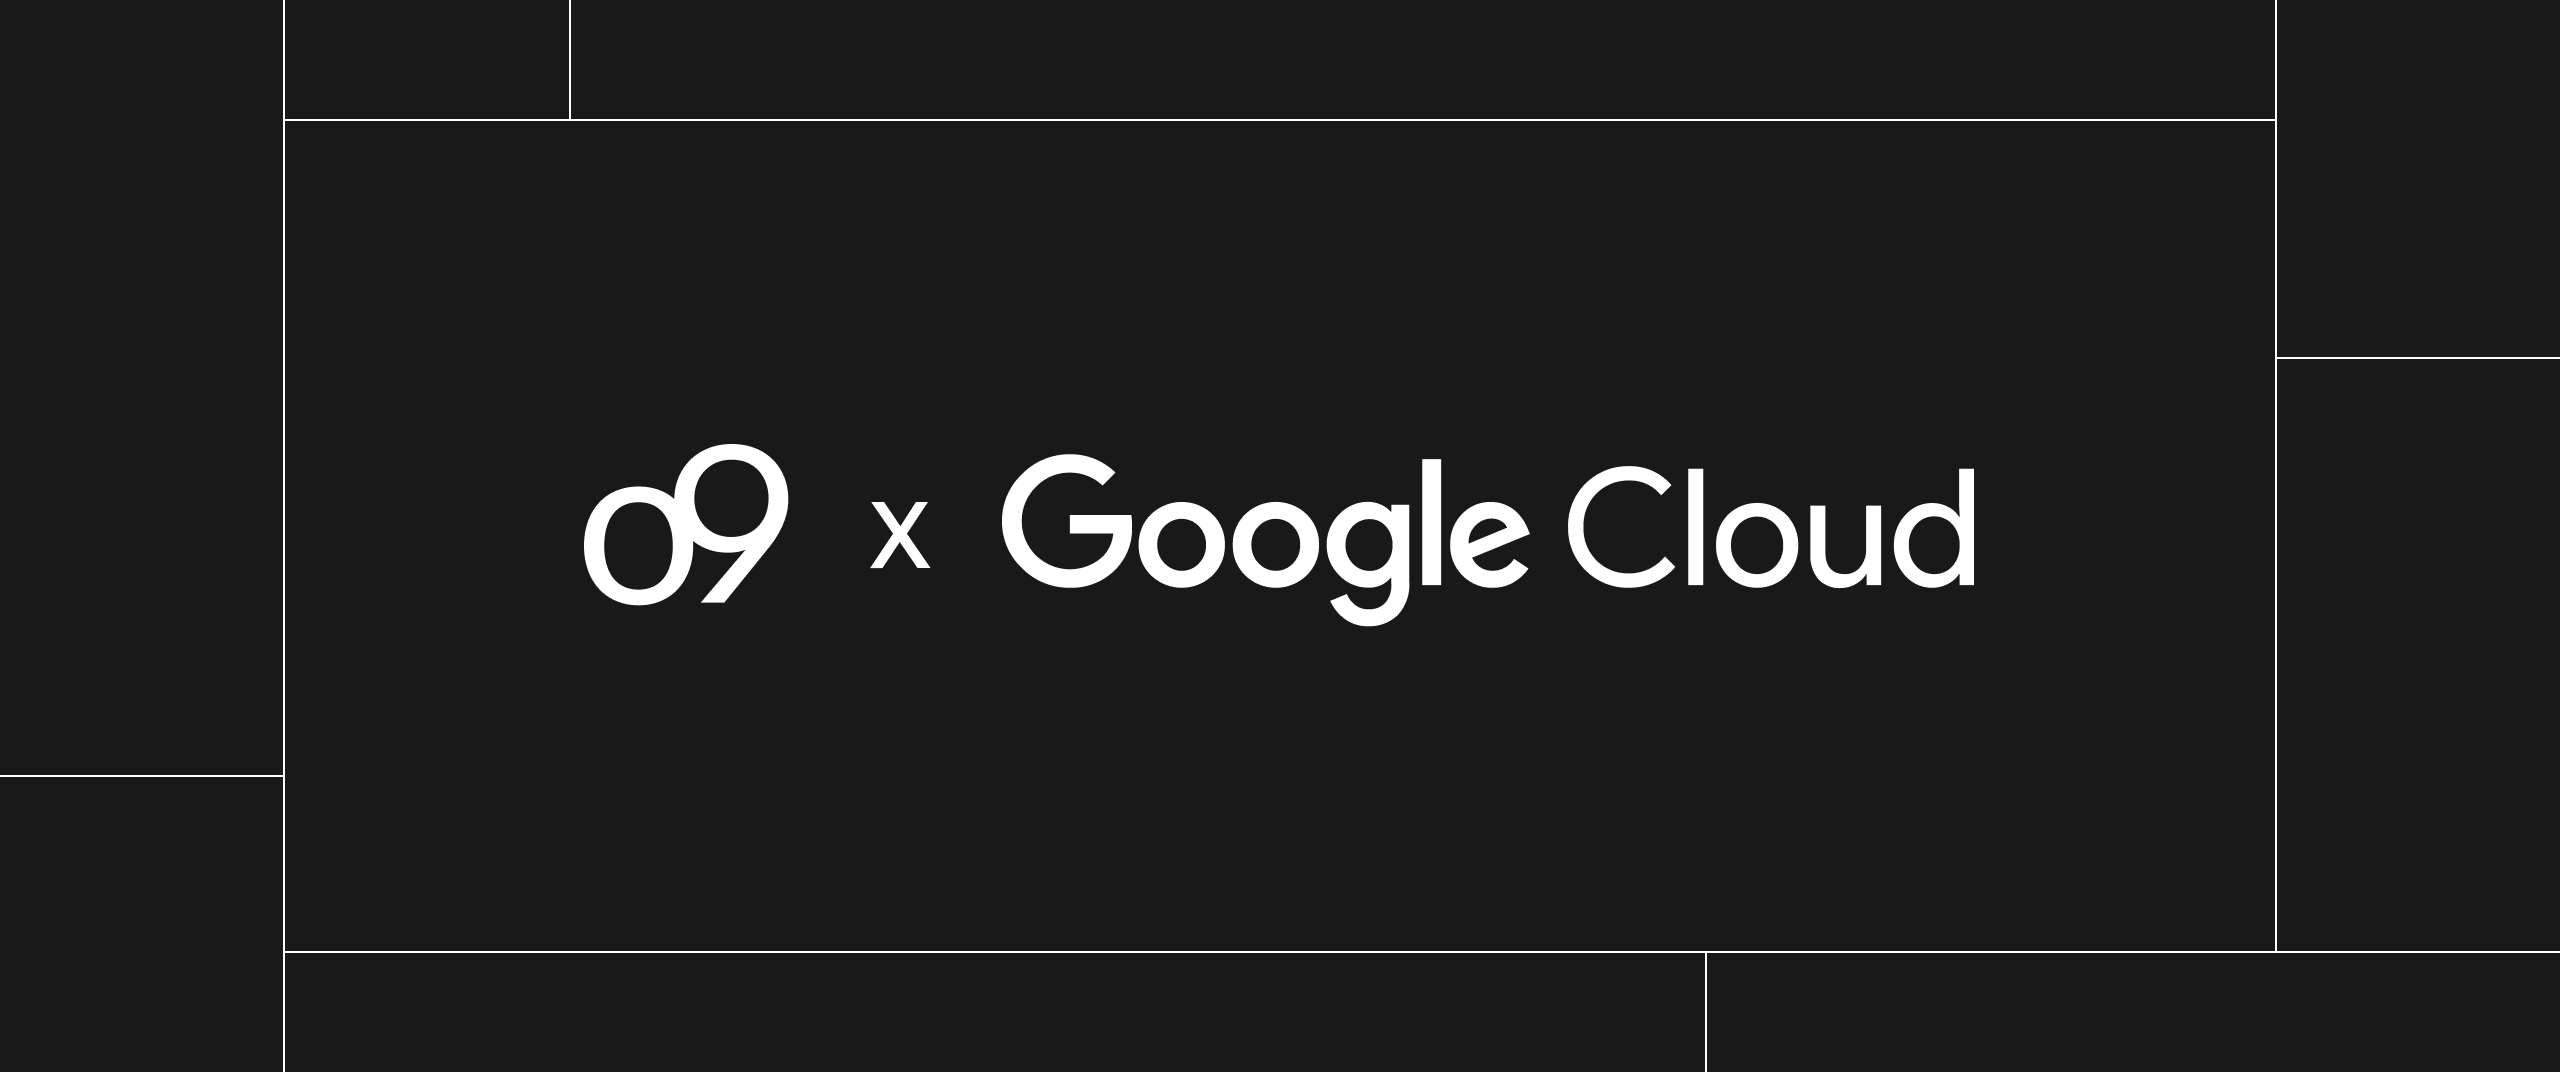 o9 Solutions Launches ML/AI-Powered Vertex AI Forecast Integration with Google Cloud to Help Retail and CPG Companies Improve Forecast Accuracy